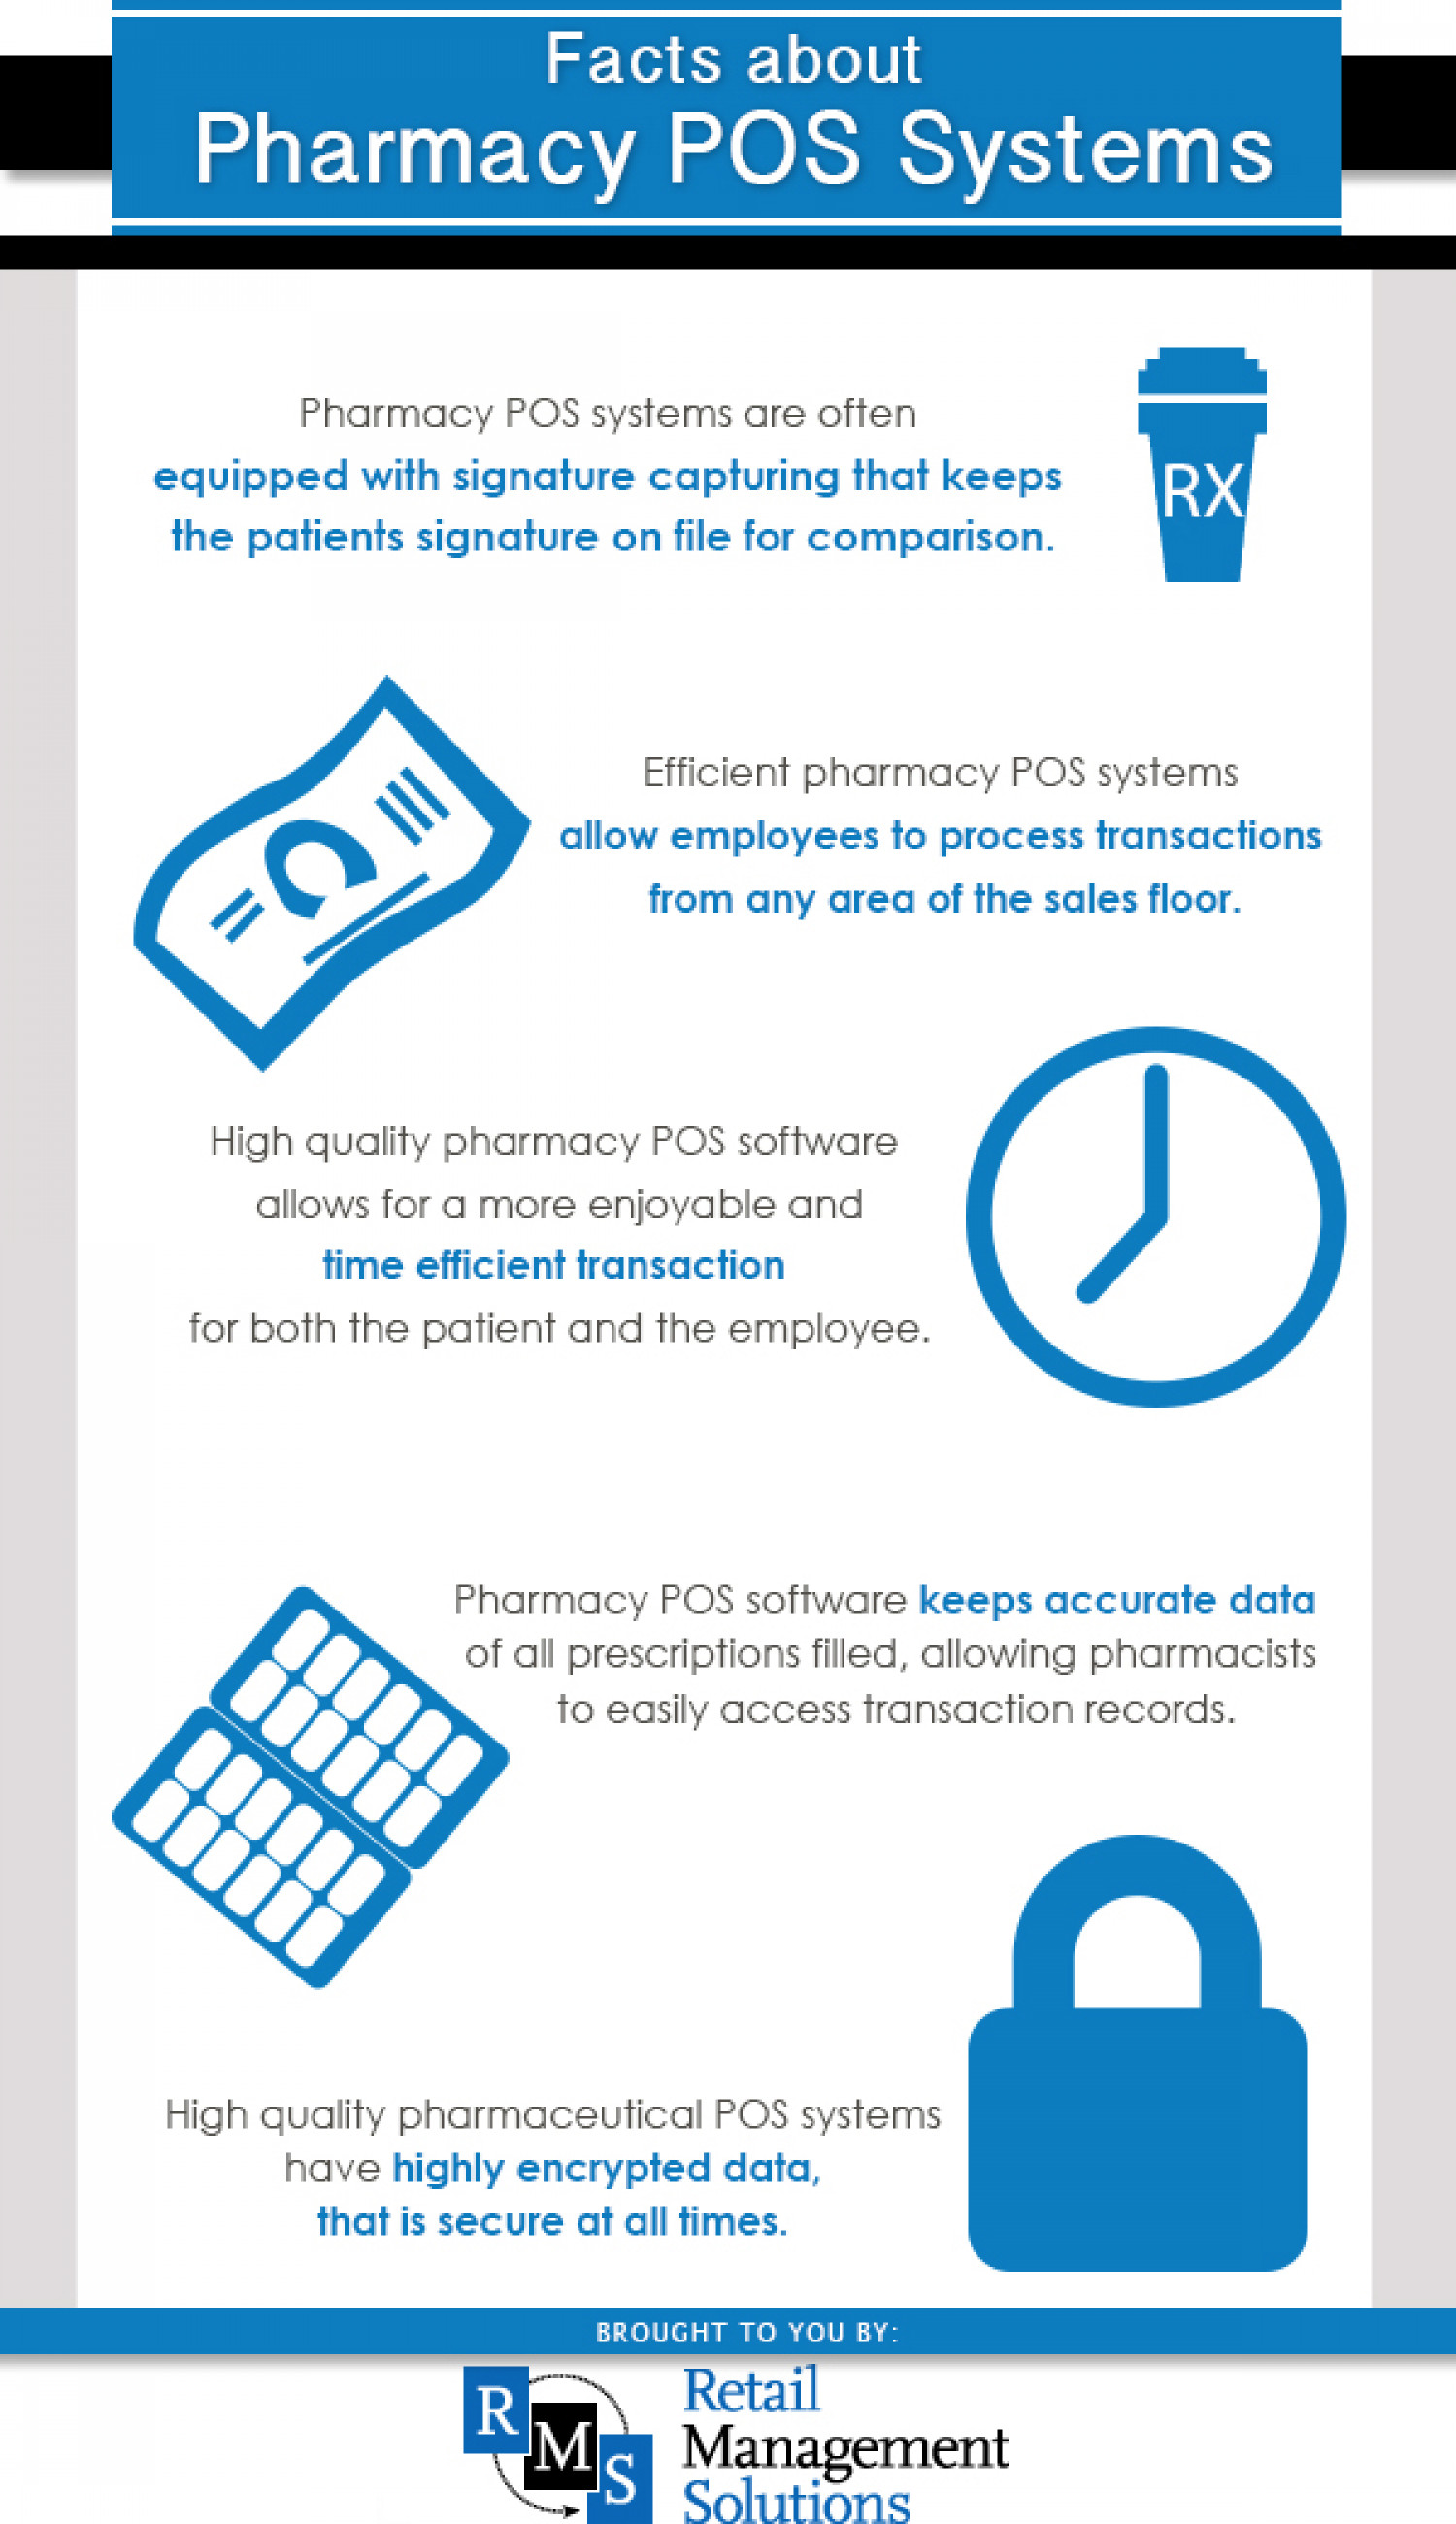 Facts About Pharmacy POS Systems Infographic